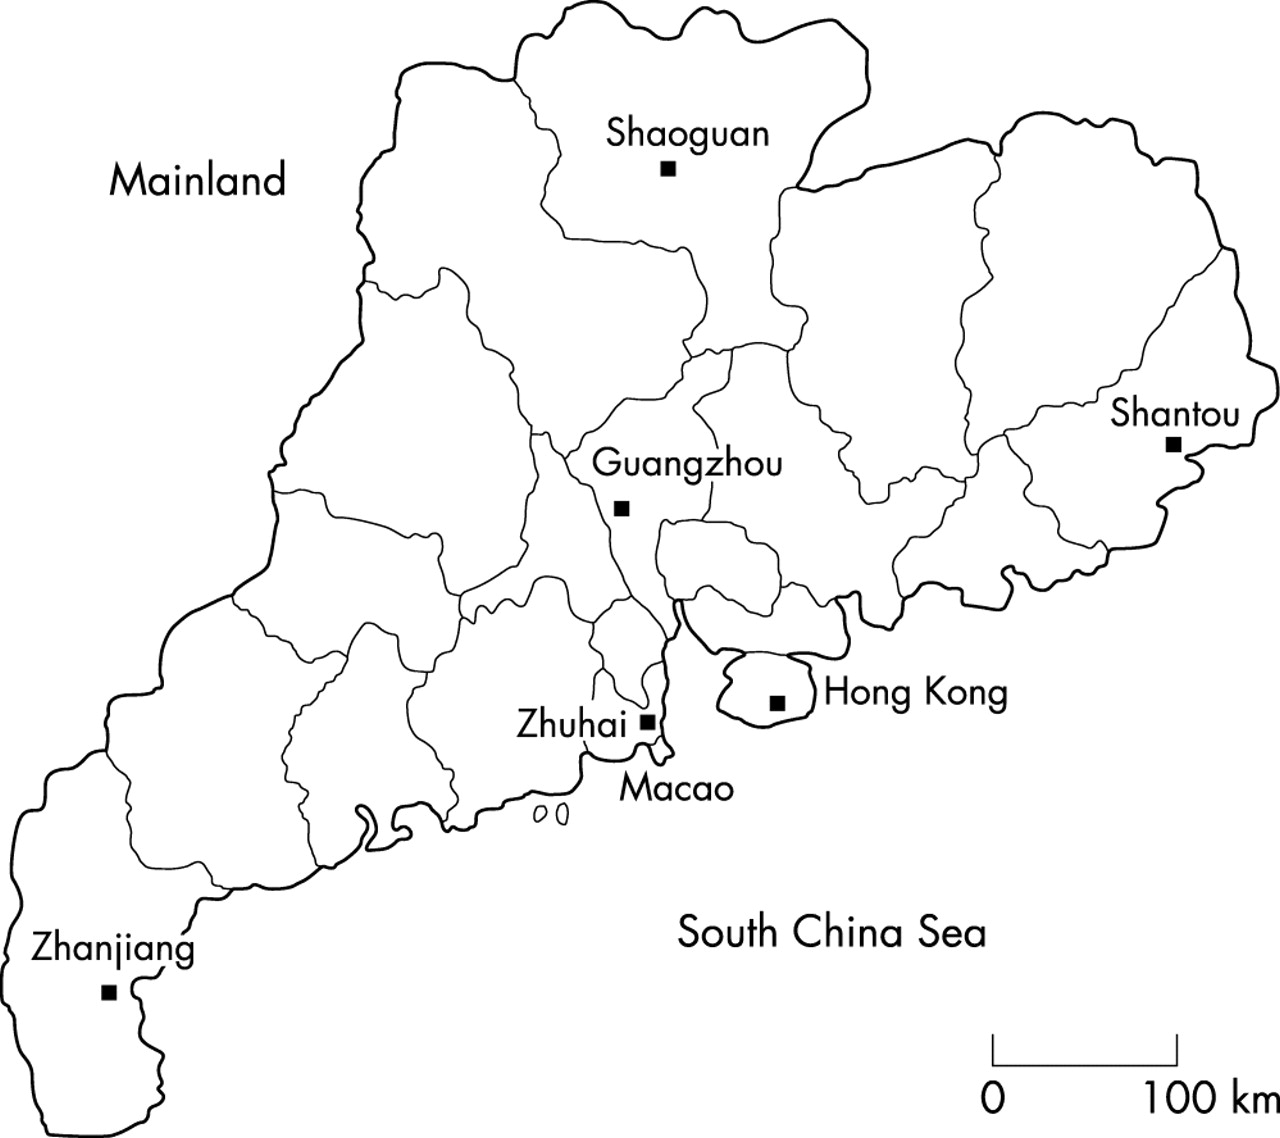 The prevalence and spectrum of α and β thalassaemia in Guangdong